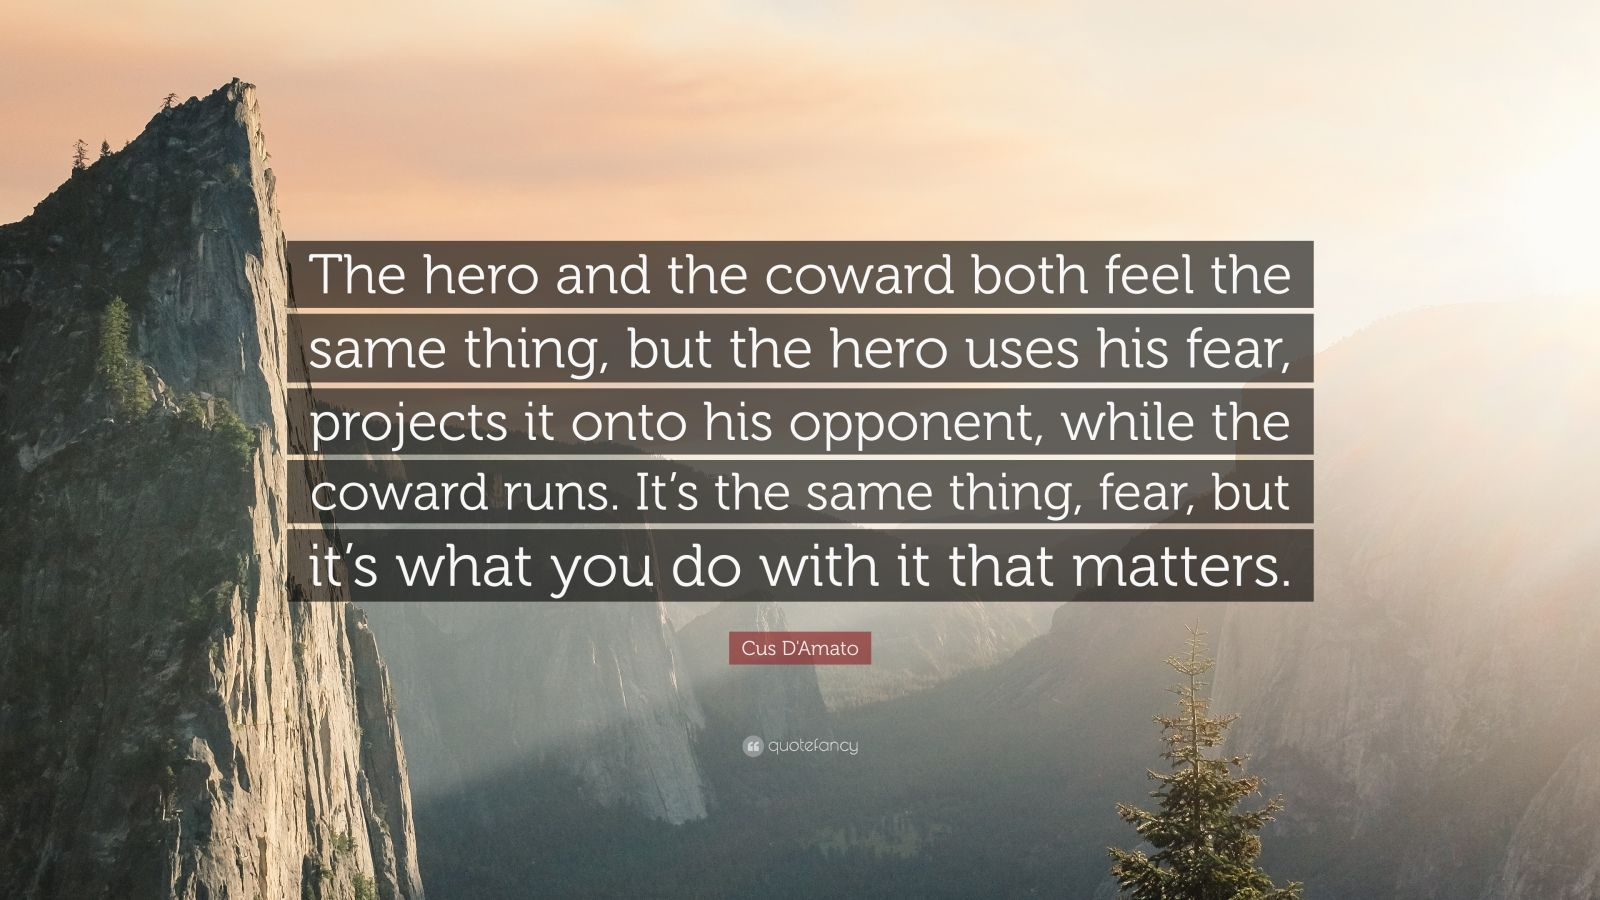 """Cus D'Amato Quote: """"The hero and the coward both feel the same thing, but the hero uses his fear, projects it onto his opponent, while the coward runs. It's the same thing, fear, but it's what you do with it that matters."""""""